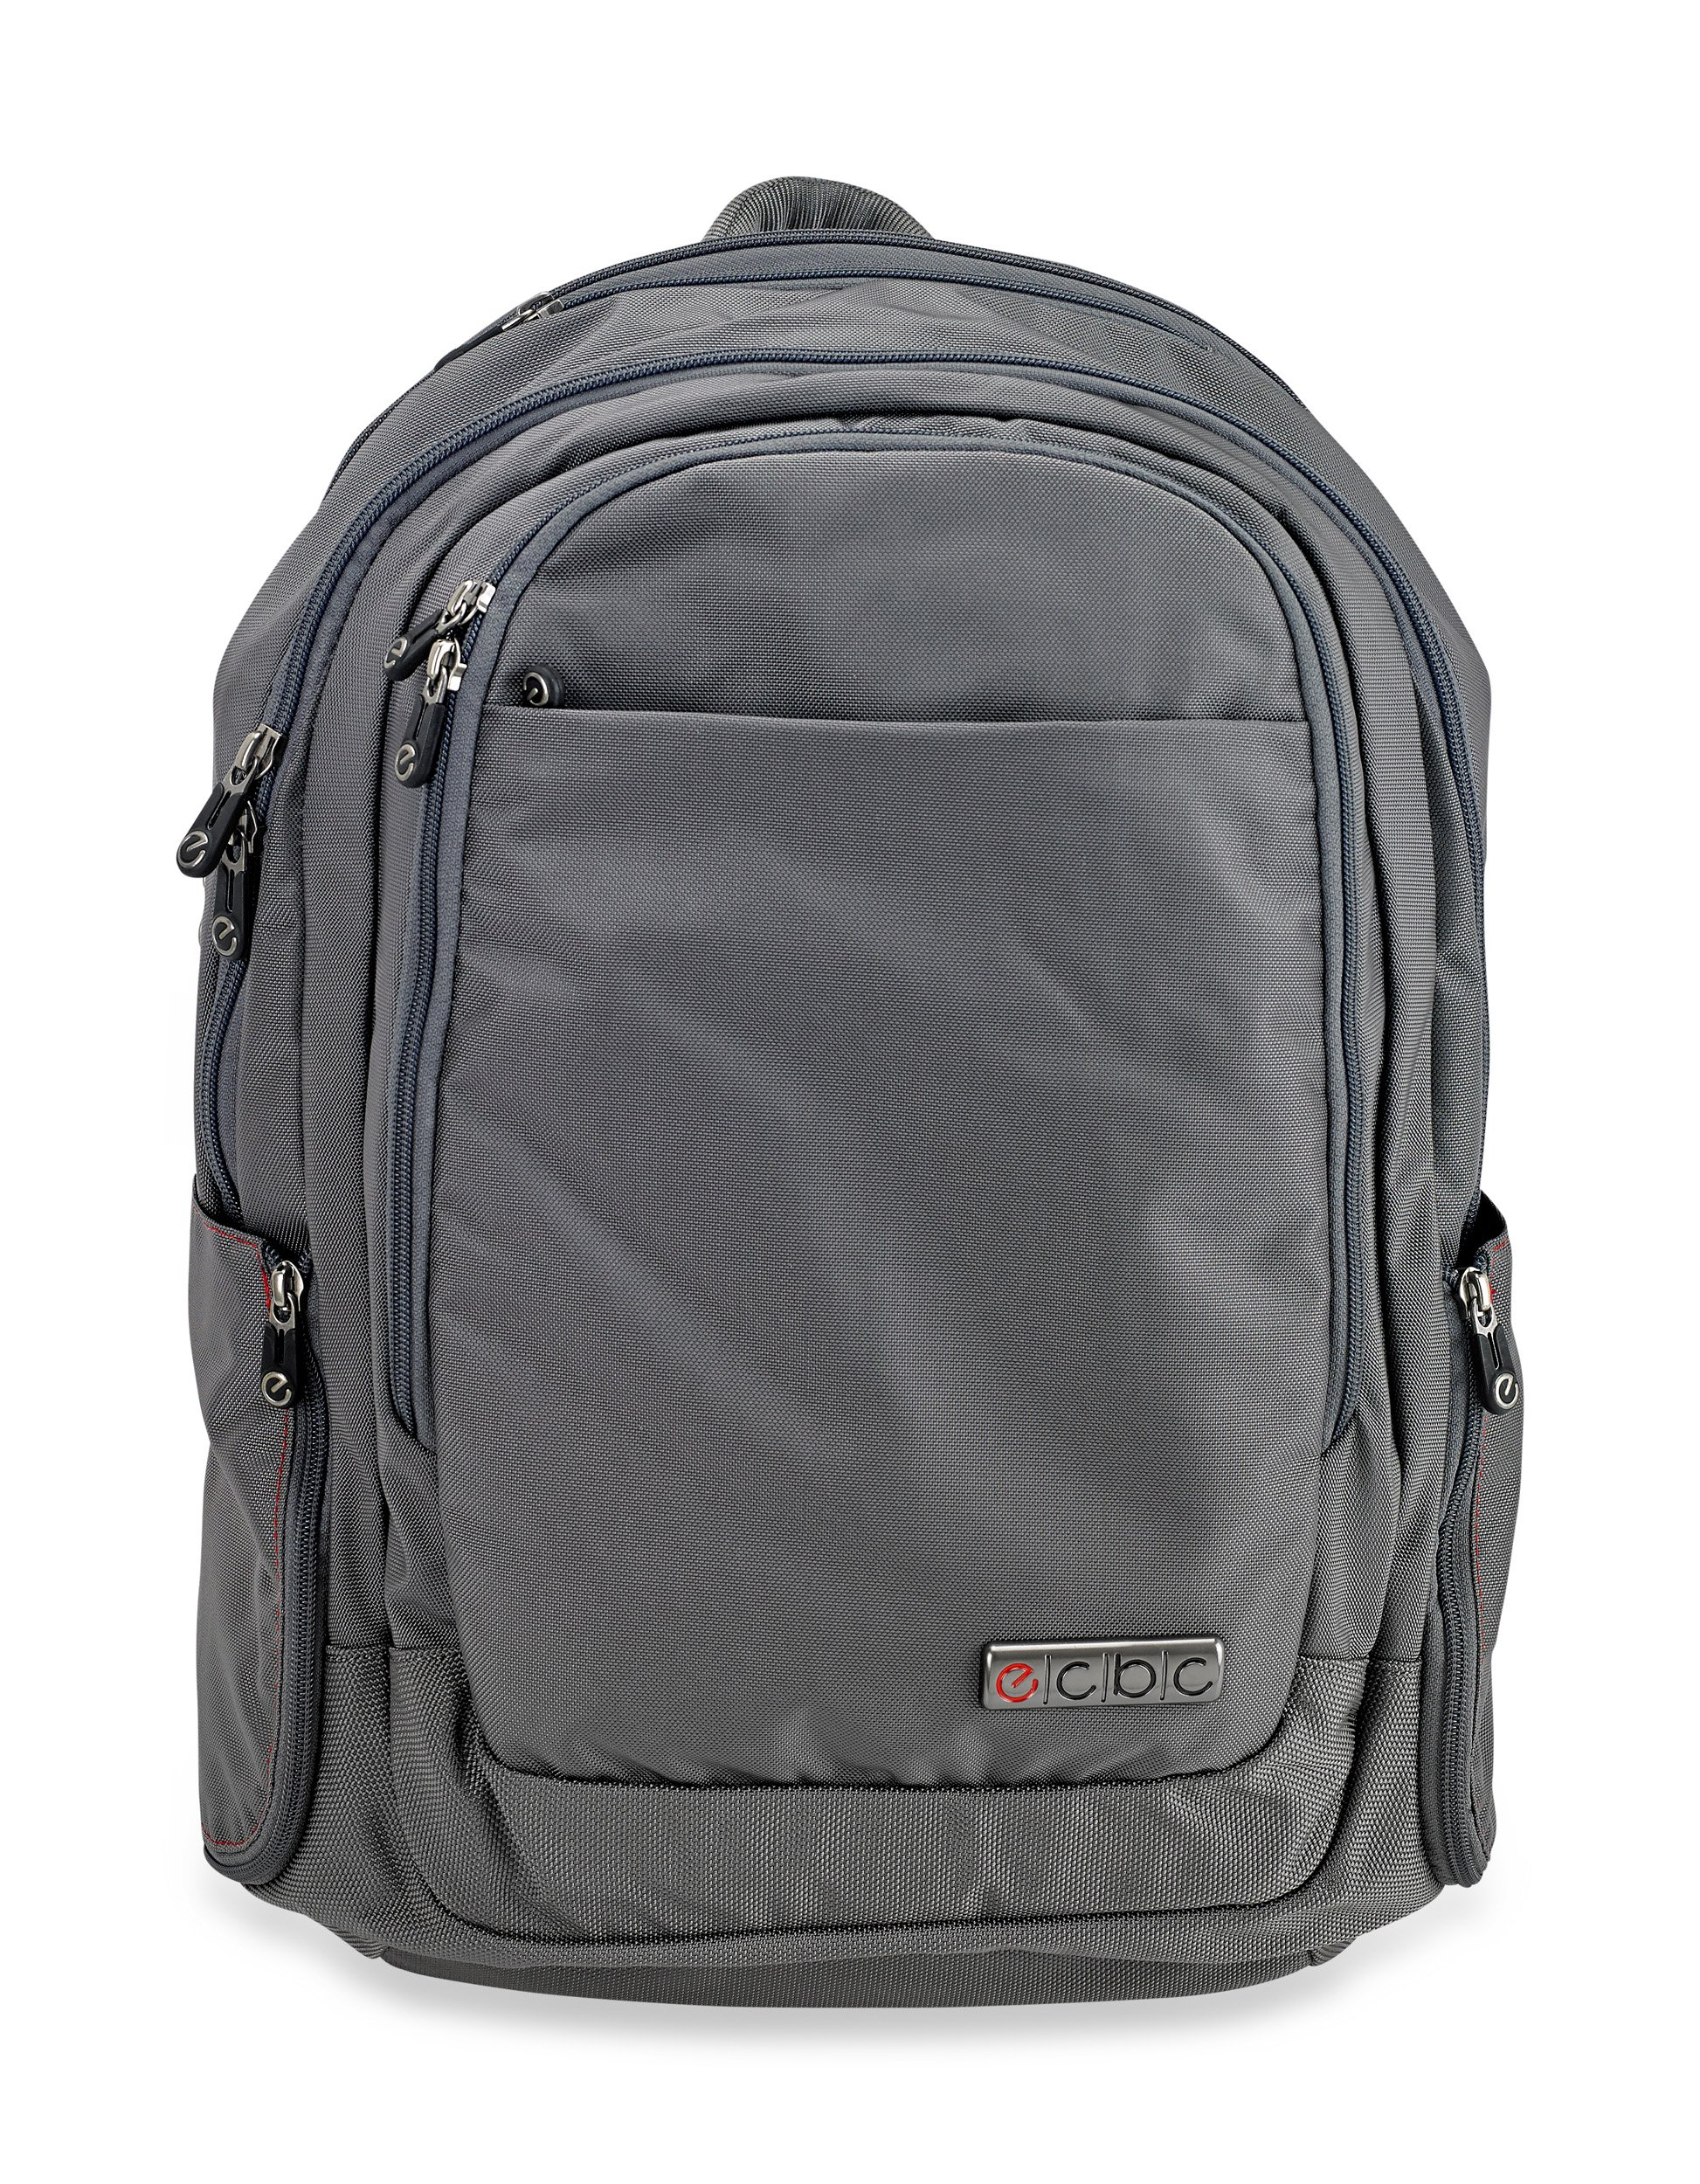 ECBC Javelin - Backpack Computer Bag - Grey (B7102-30) Daypack for Laptops, MacBooks & Devices Up to 16.5'' - Travel, School or Business Backpack for Men & Women - Premium Quality, TSA FastPass Friendly by ECBC